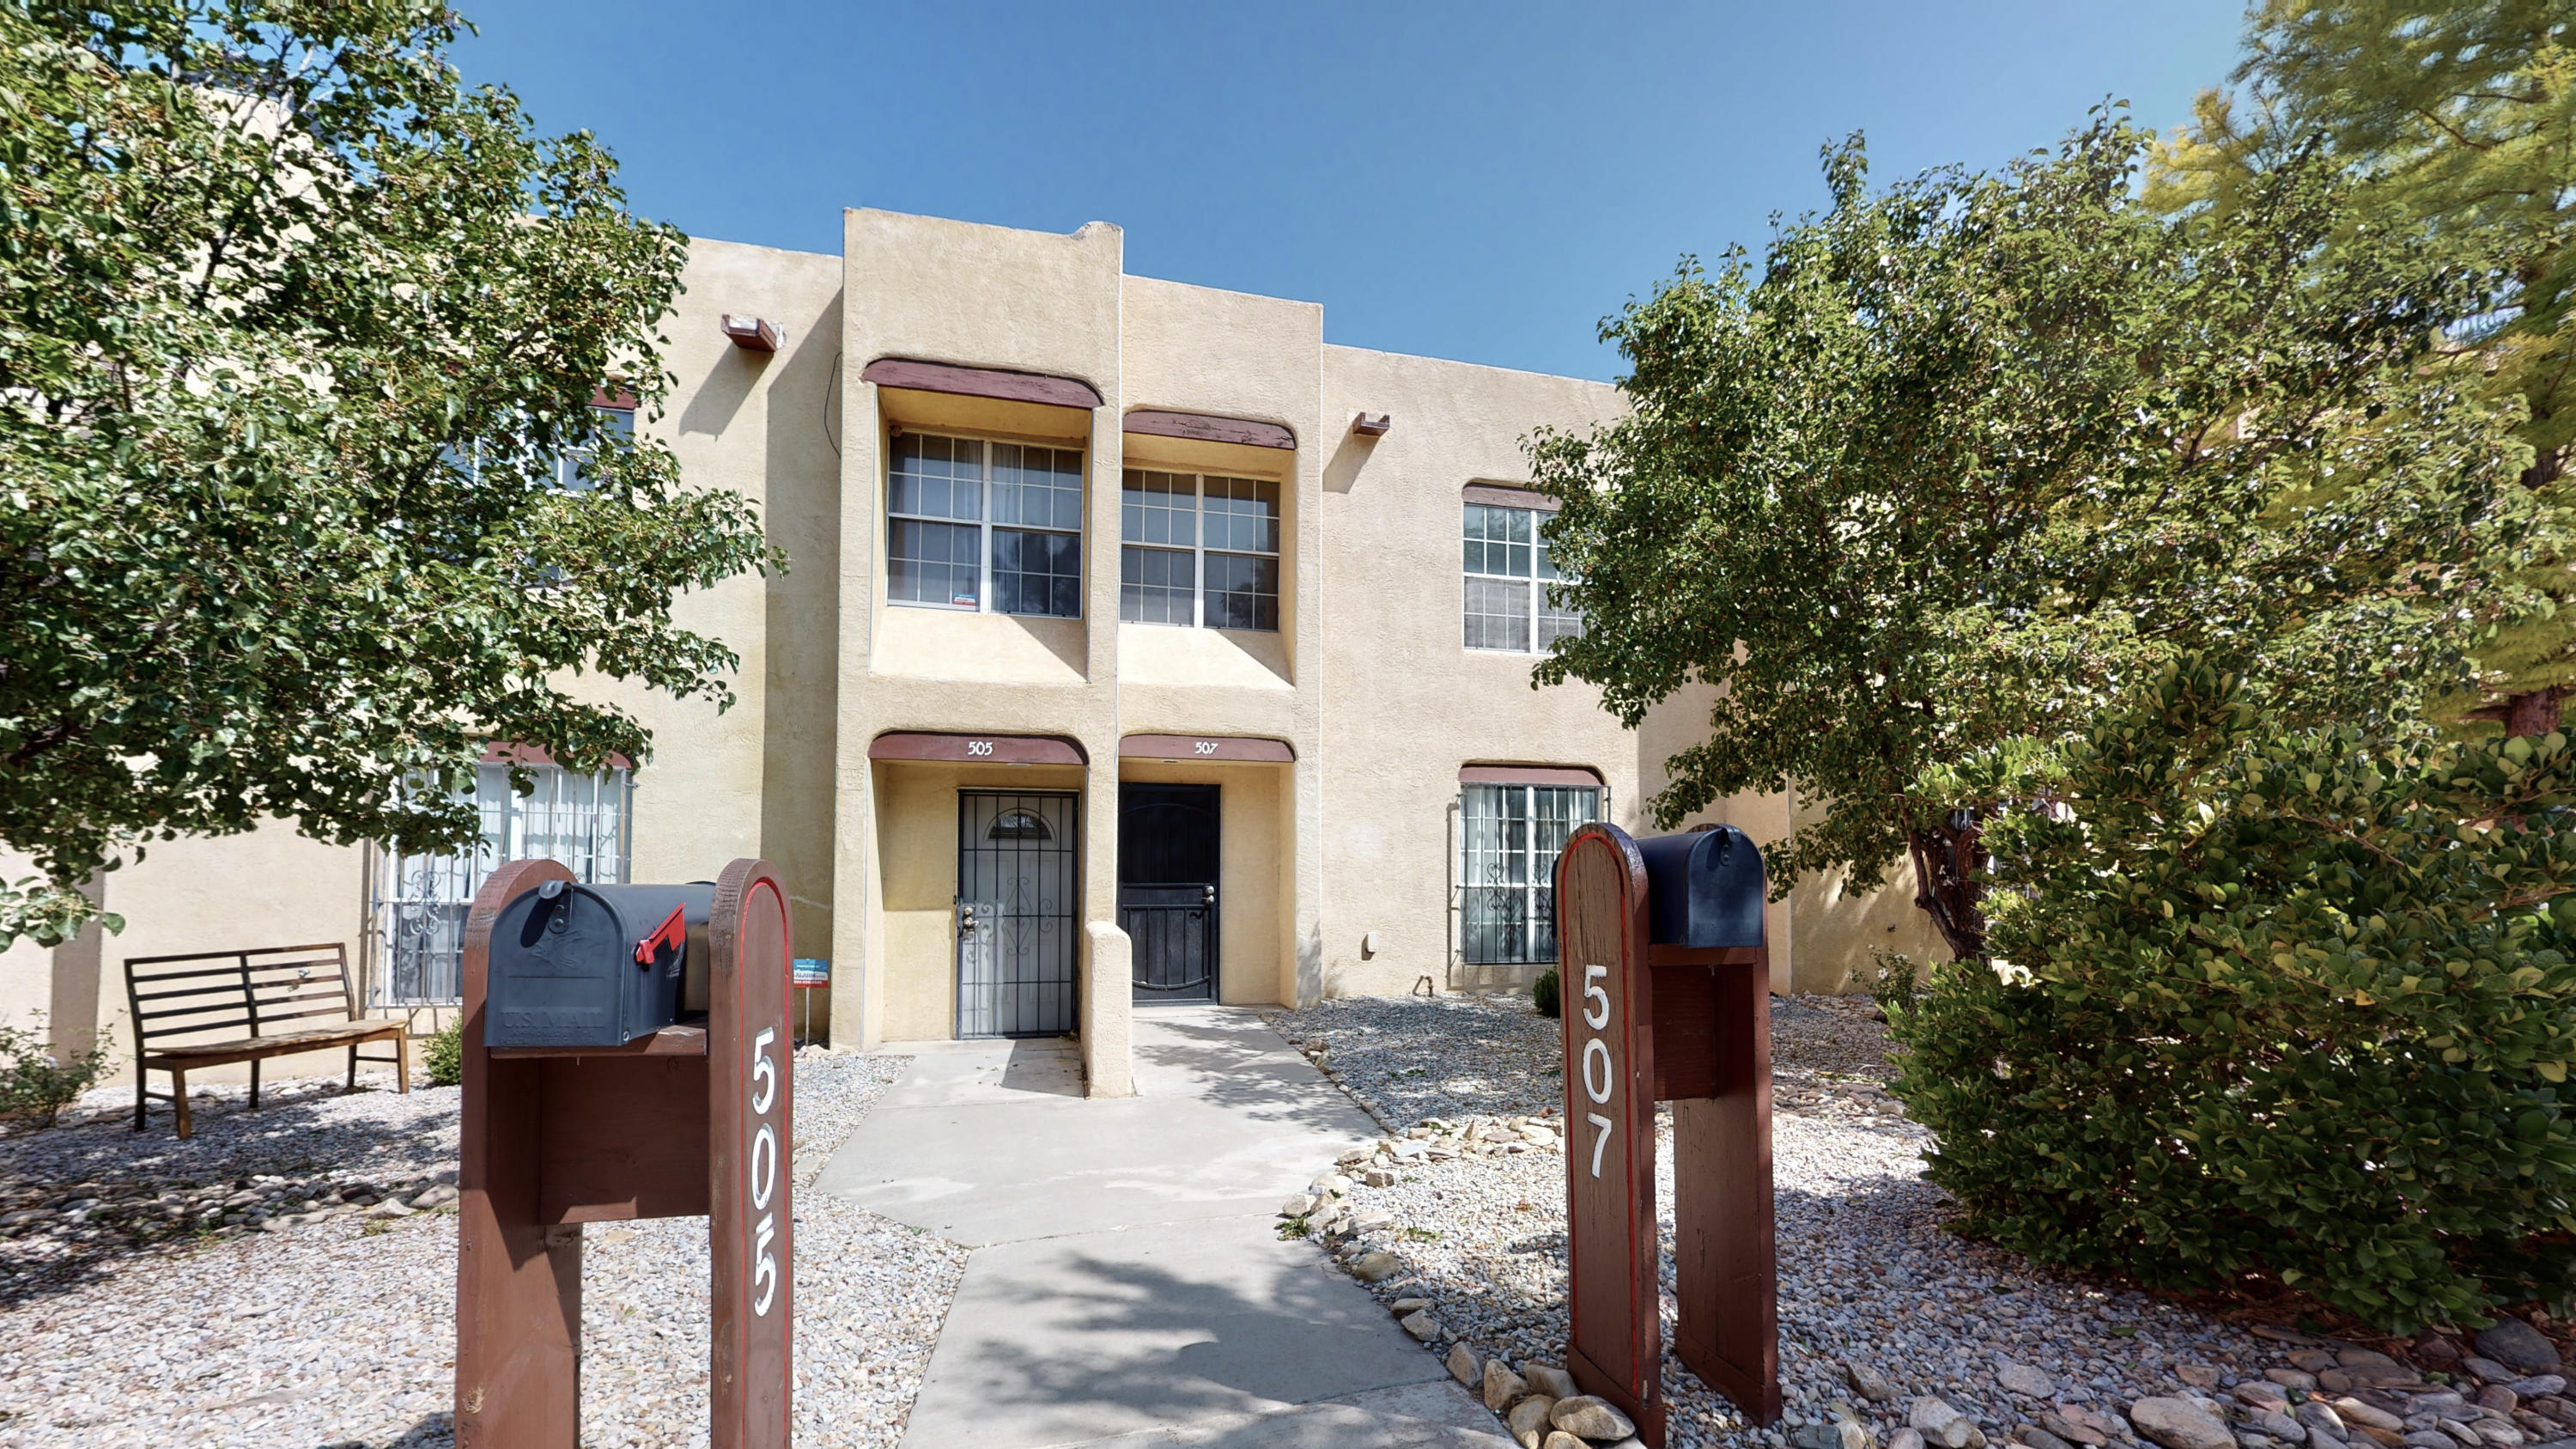 Charming two-story townhome in downtown Albuquerque! The cozy living room features a wood-burning fireplace and oversized window allowing natural light to flow into the home. The beautiful tile downstairs looks like reclaimed wood that will leave your guests in awe! The must-see kitchen is open to the dining room and features a built-in breakfast bar! Take a step outside into the back courtyard area with shade trees and access to the two-car garage! Stackable Washer and dryer stay! Conveniently located in the heart of the city near Lovelace Medical Center, UNM, Downtown, Knob Hill, Old Town, CNM, Museums, Restaurants, Shopping, and freeway access. Take a virtual walkthrough tour!